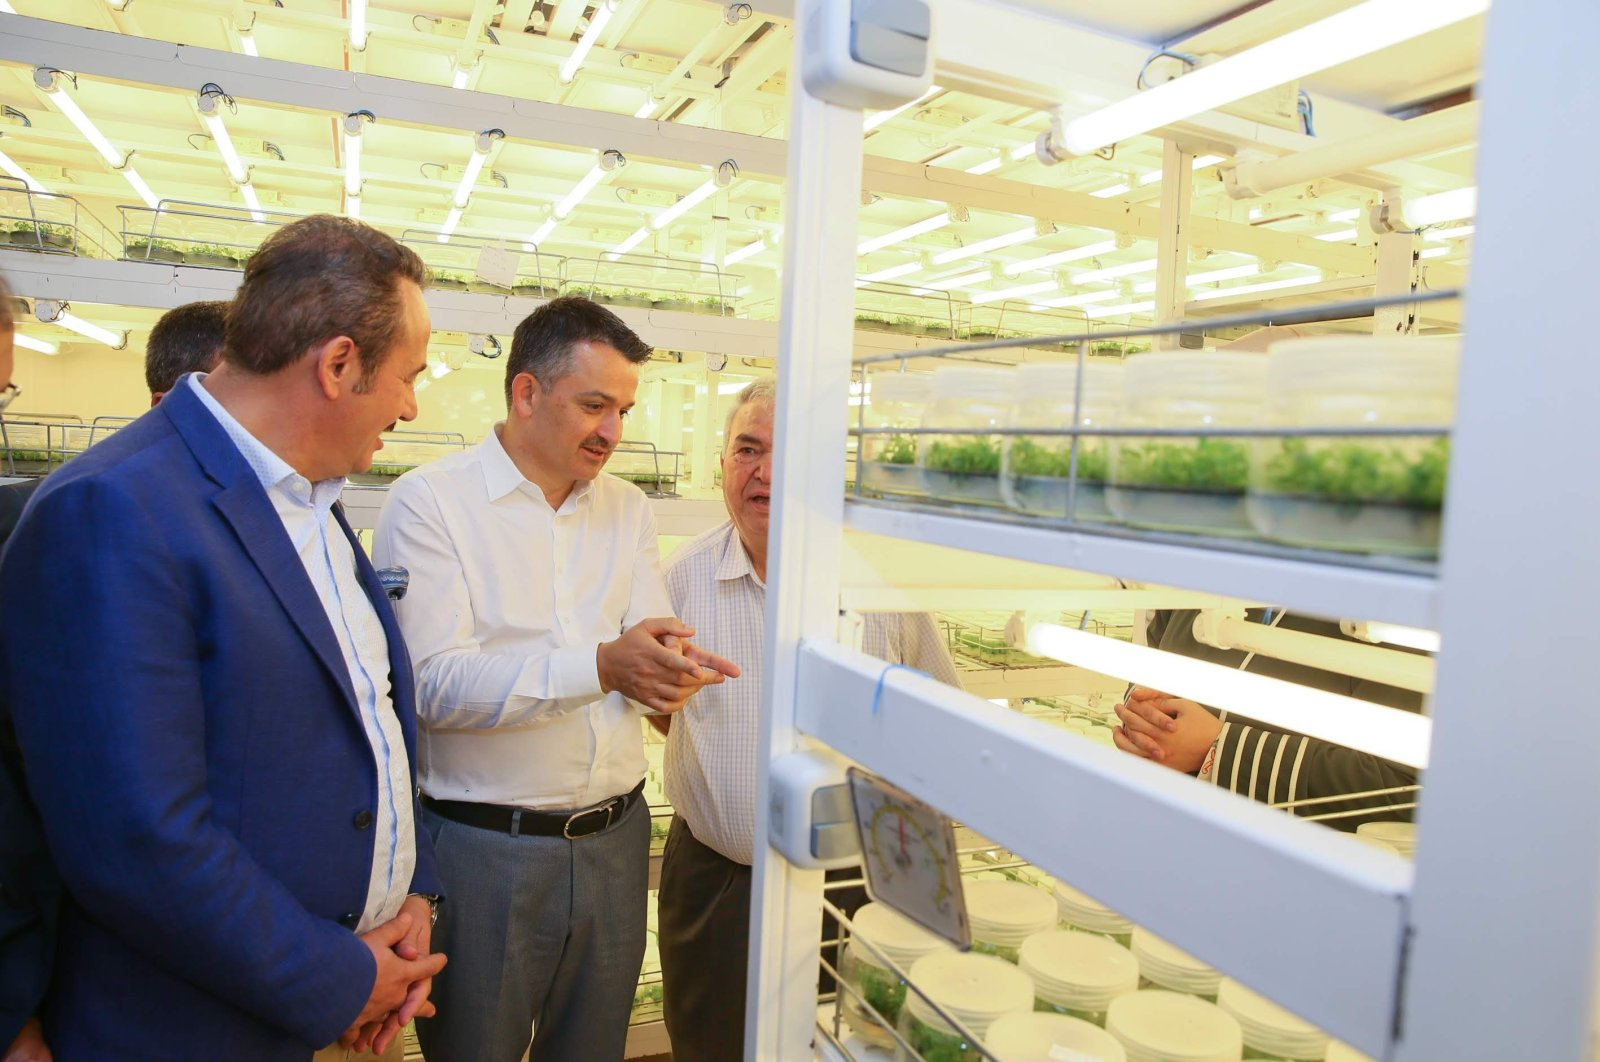 Agriculture and Forestry Minister Bekir Pakdemirli visits the Bademli Arboriculture Cooperative Tissue Culture Laboratory in the Ödemiş district of Izmir province, western Turkey, Sept. 20, 2020 (AA Photo)